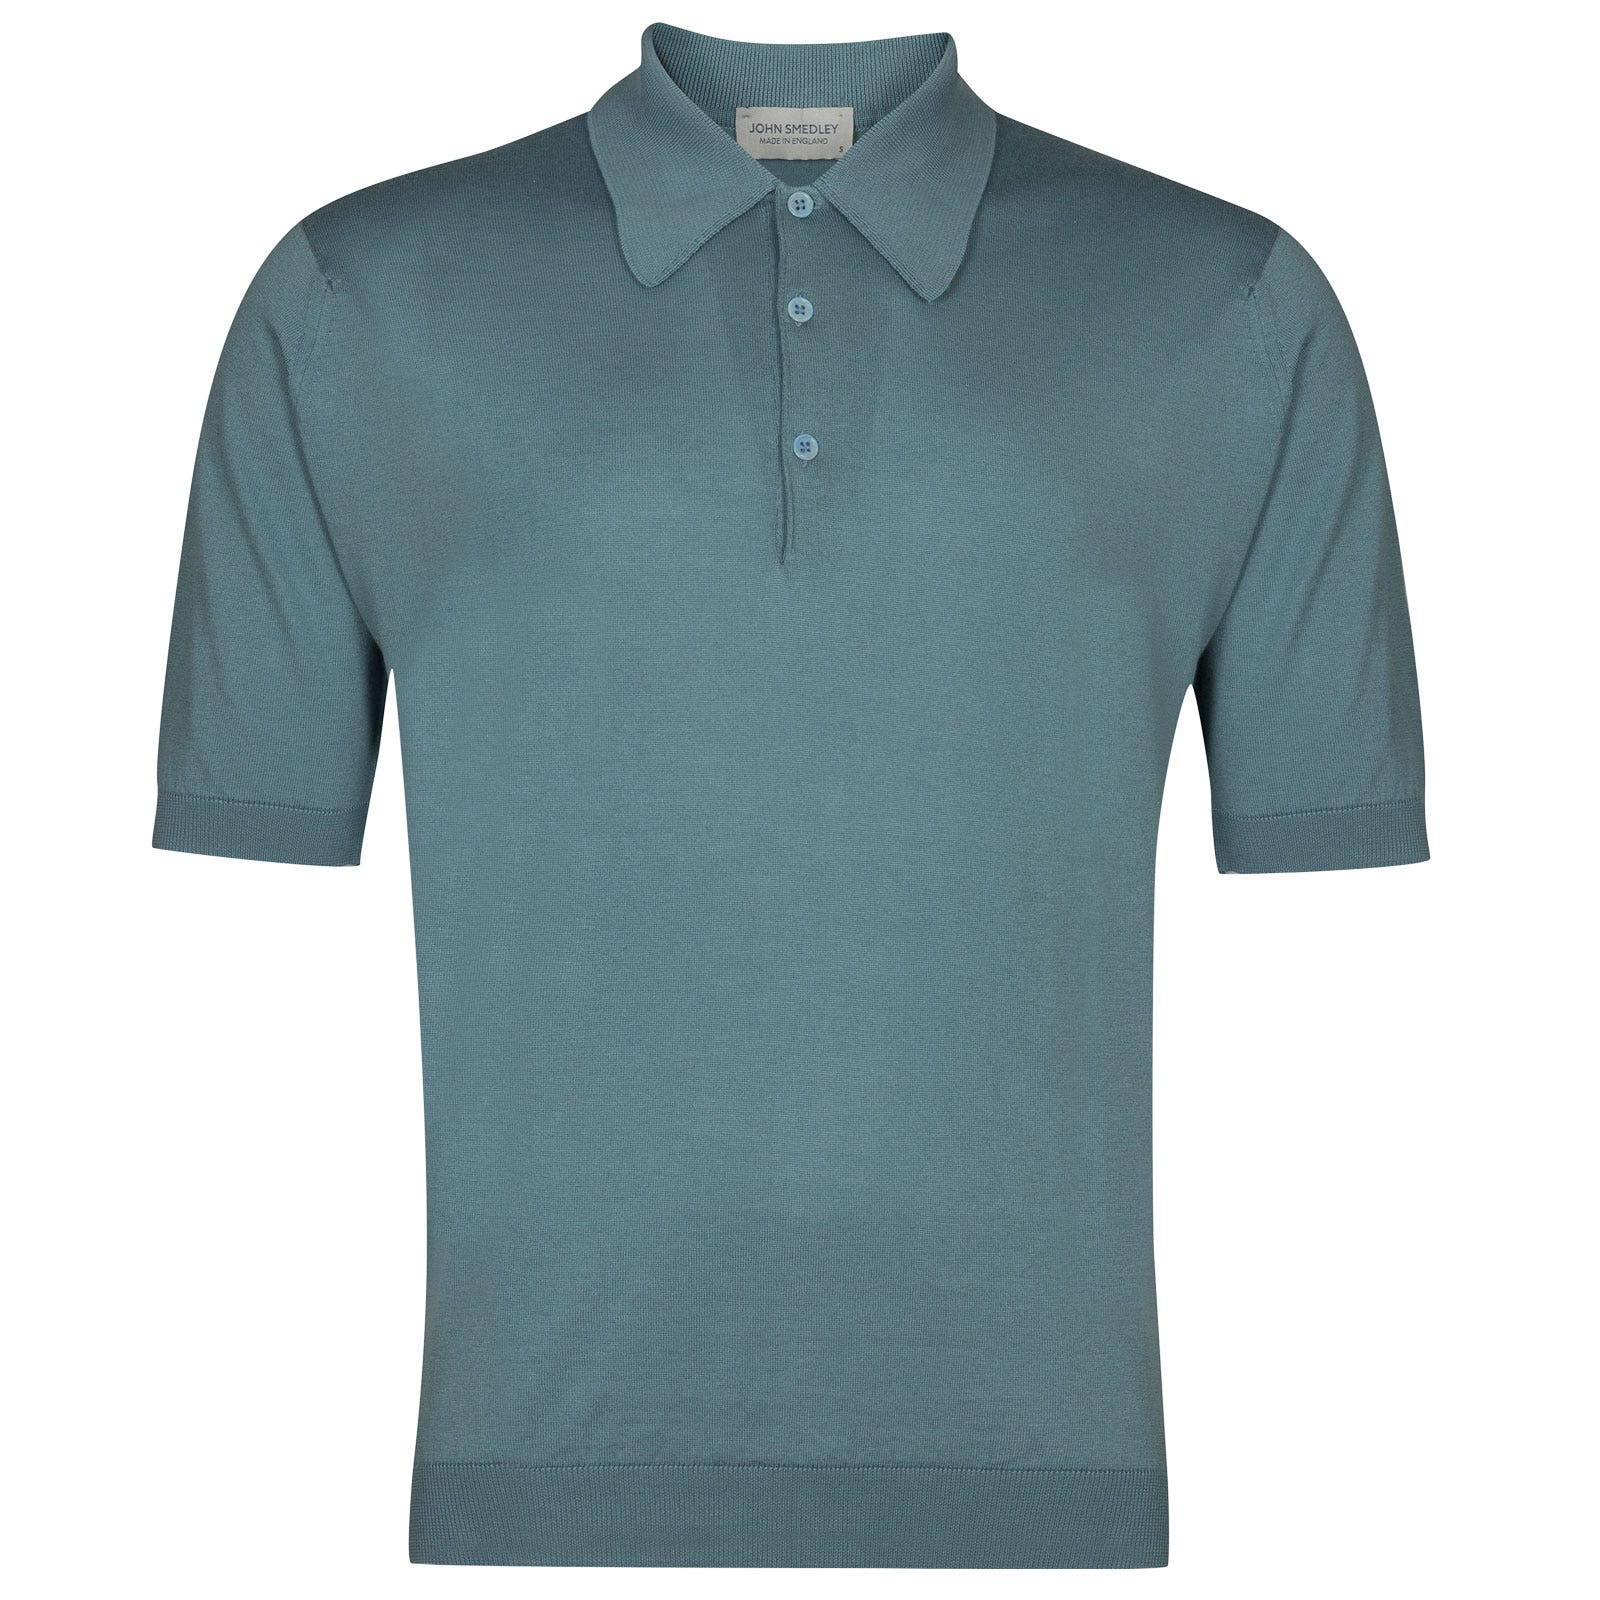 John Smedley Isis Sea Island Cotton Shirt in Summit Blue-M